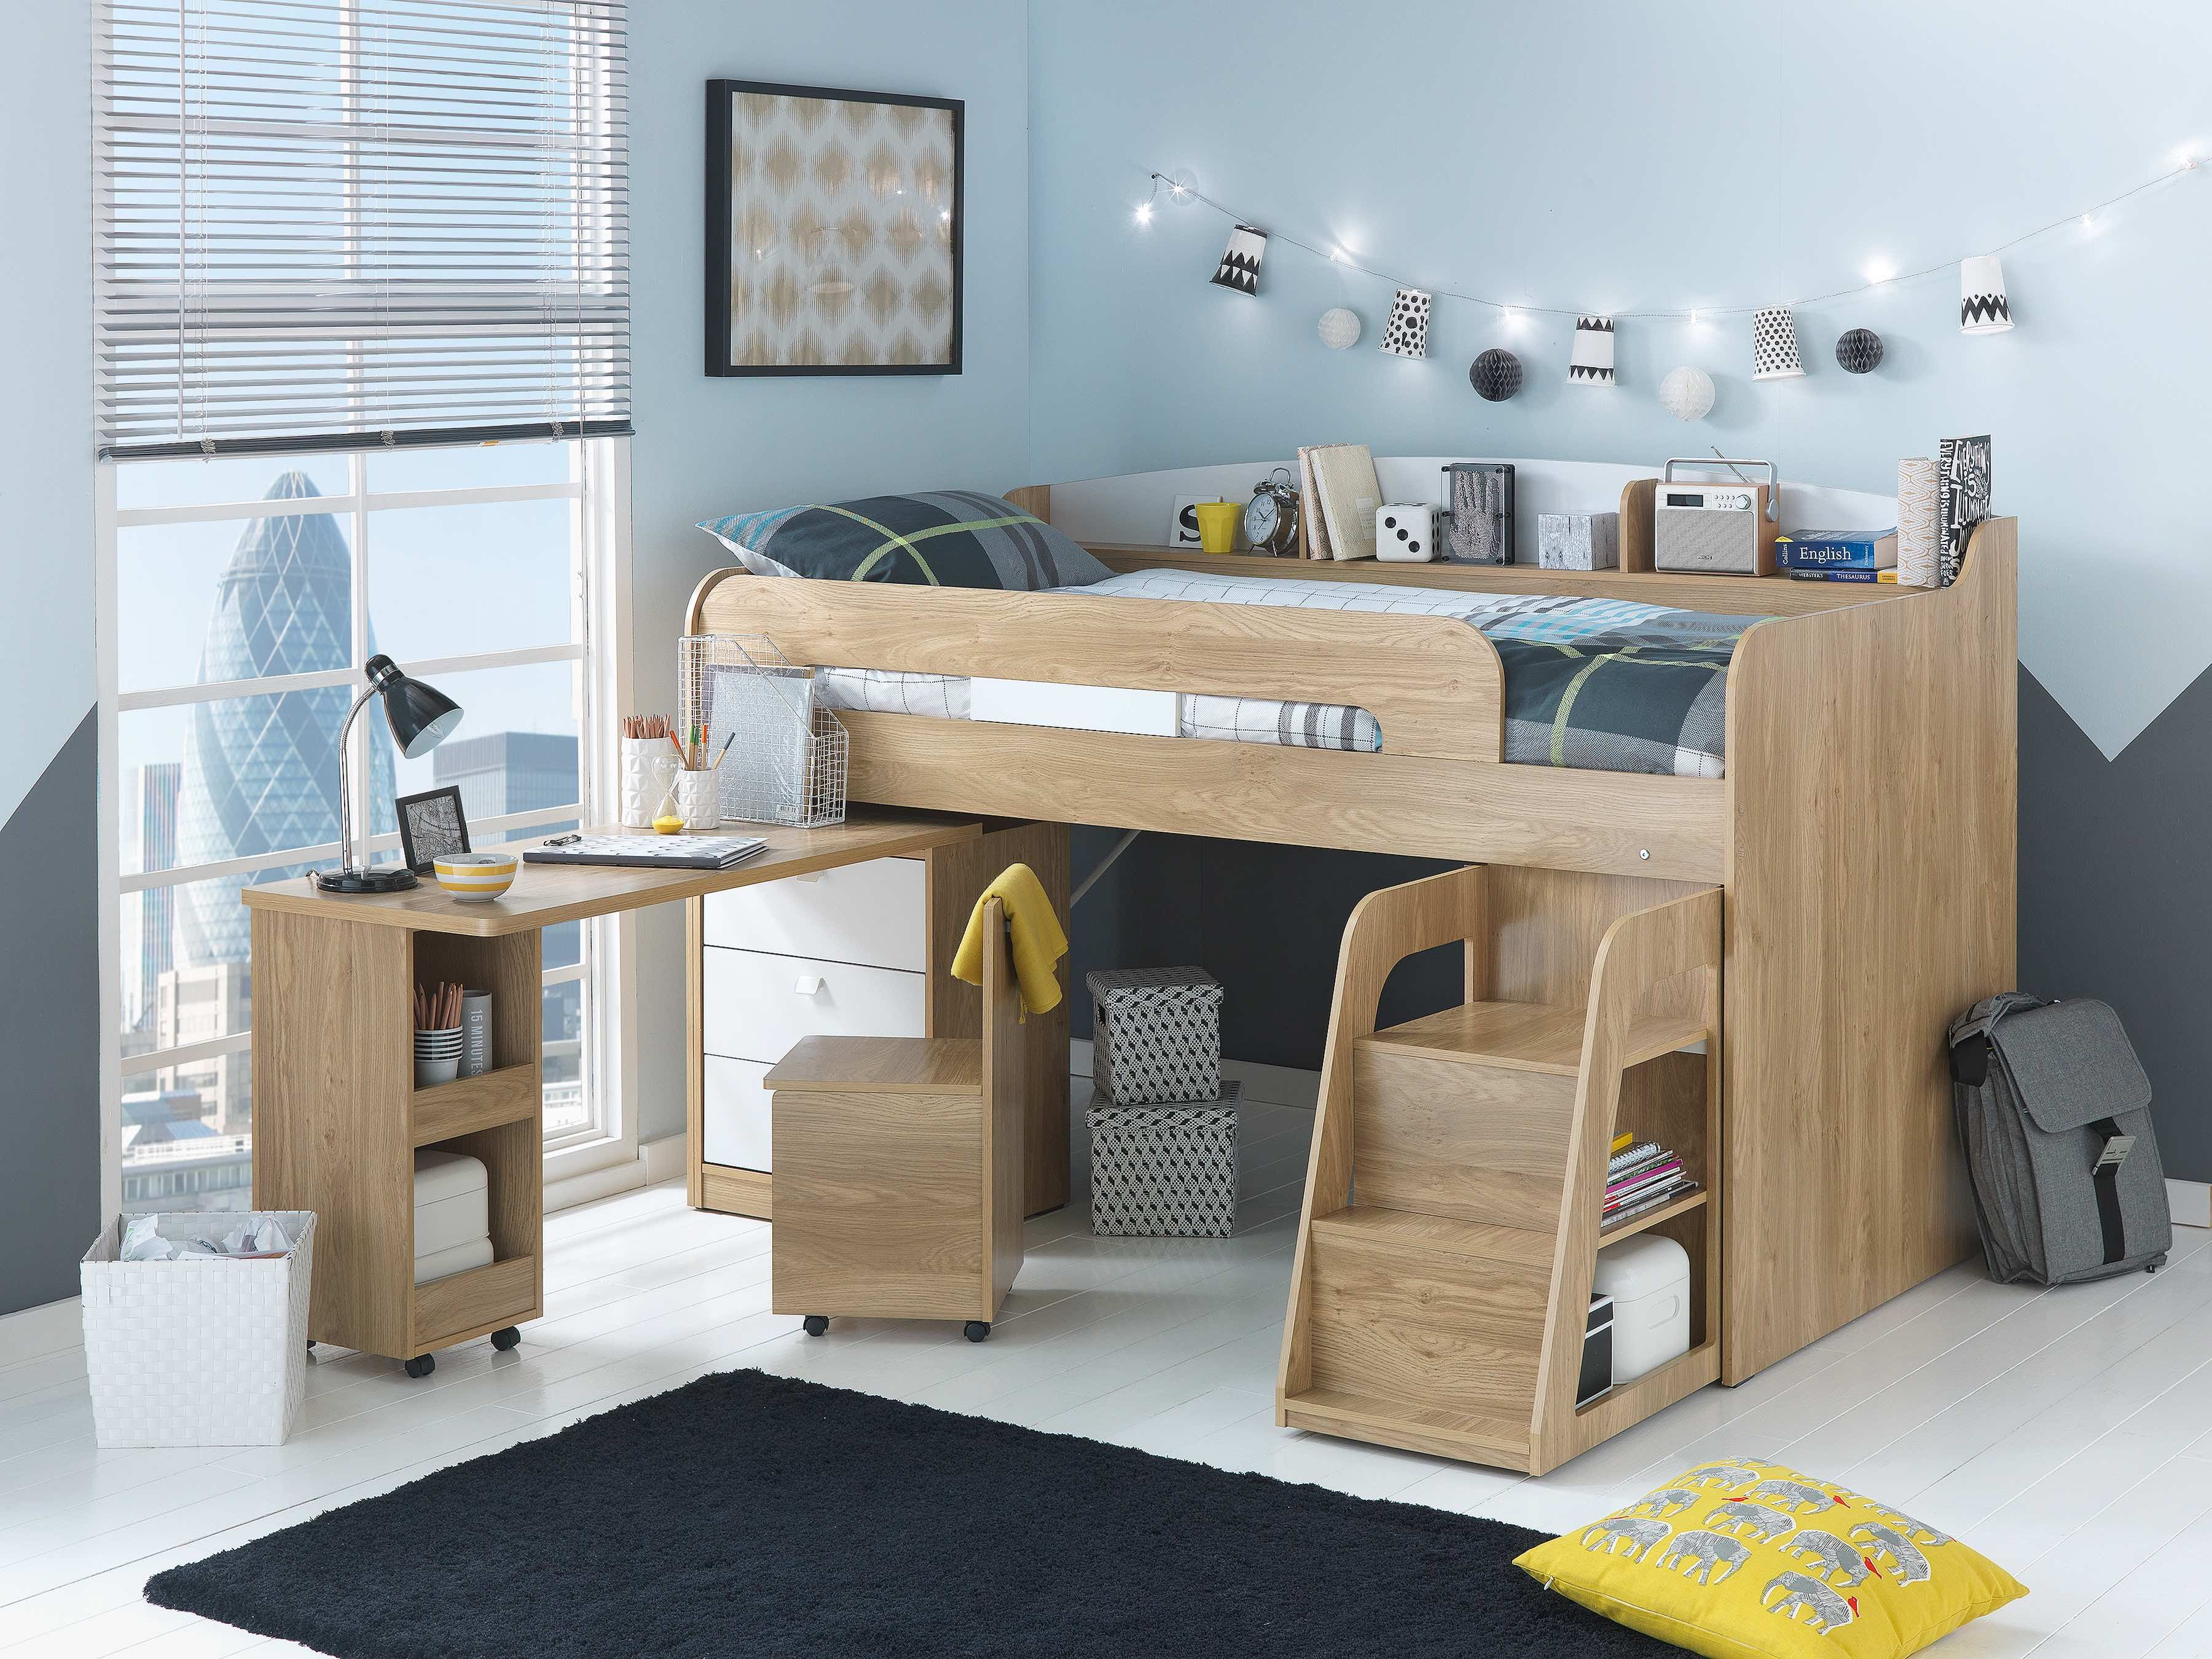 Give Your Little One A Bed Of Dreams With The Ultimate